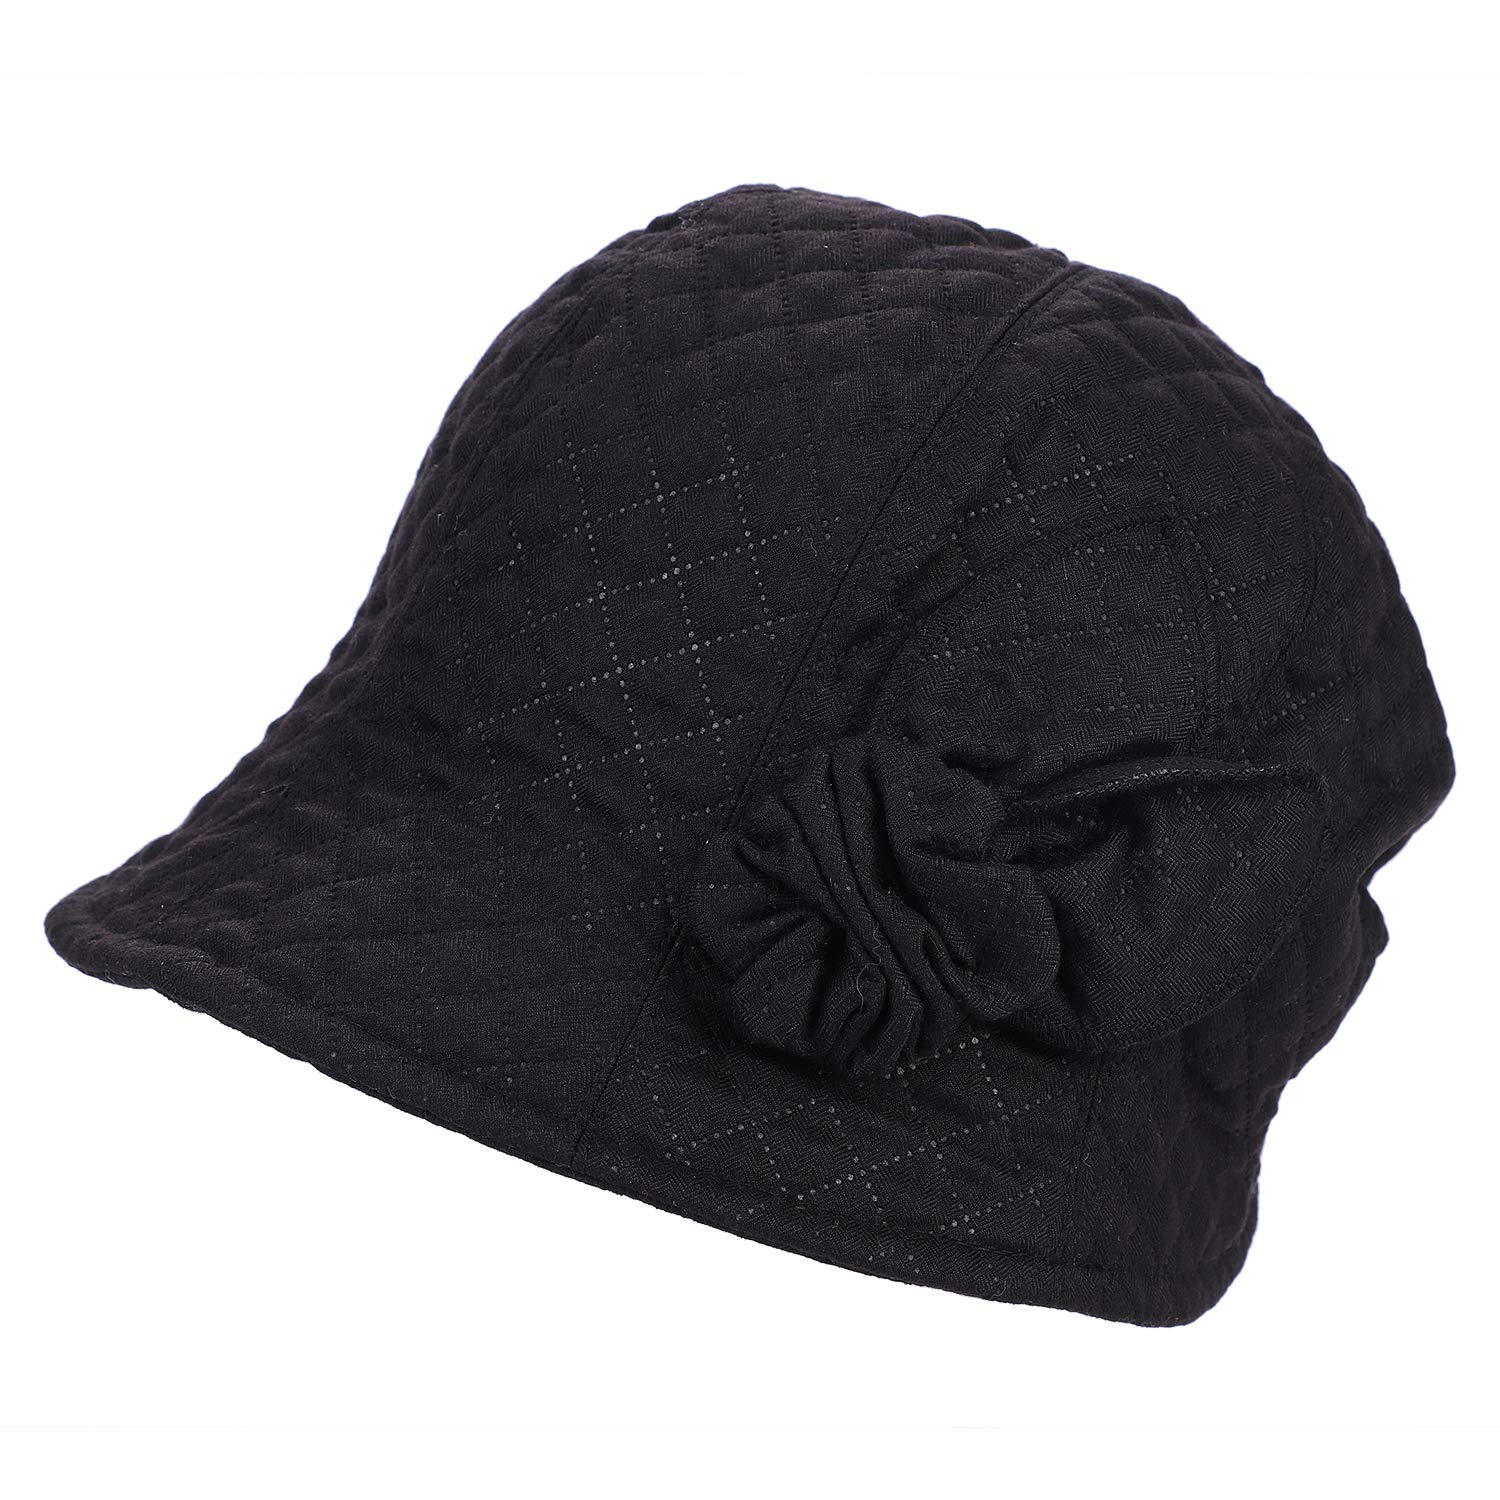 9bc38962c0f ITODA Women Bucket Hat with Visor Cloche Fall Winter Warmer Fedora Cap  Breathable Casual Packable Lady Protection Outdoor Slouchy Headwear with  Headband